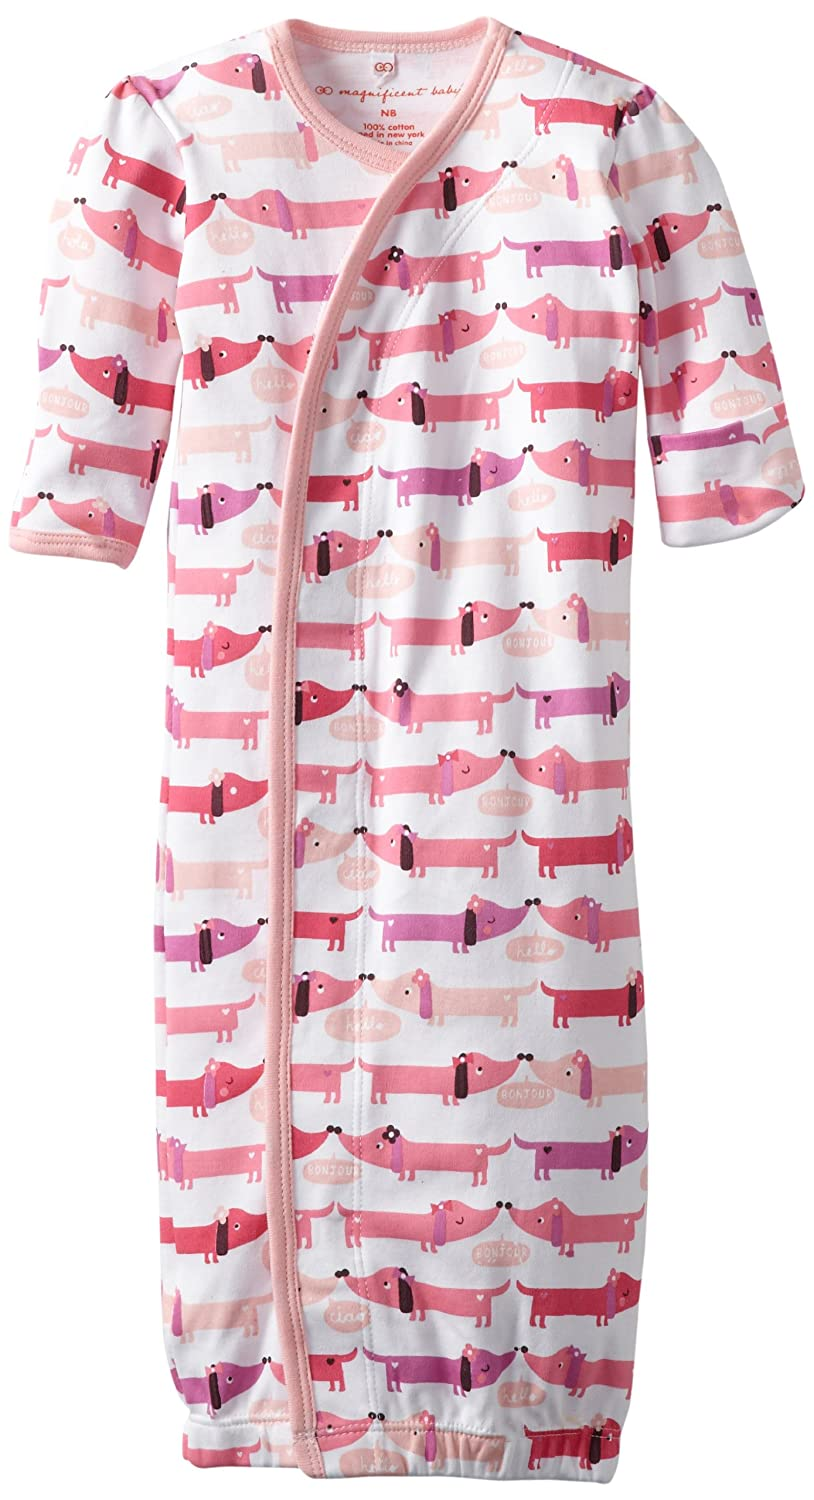 Magnificent Baby Girl Hot Dogs Gown, Hot Dogs, New Born, 1-Pack 1146G